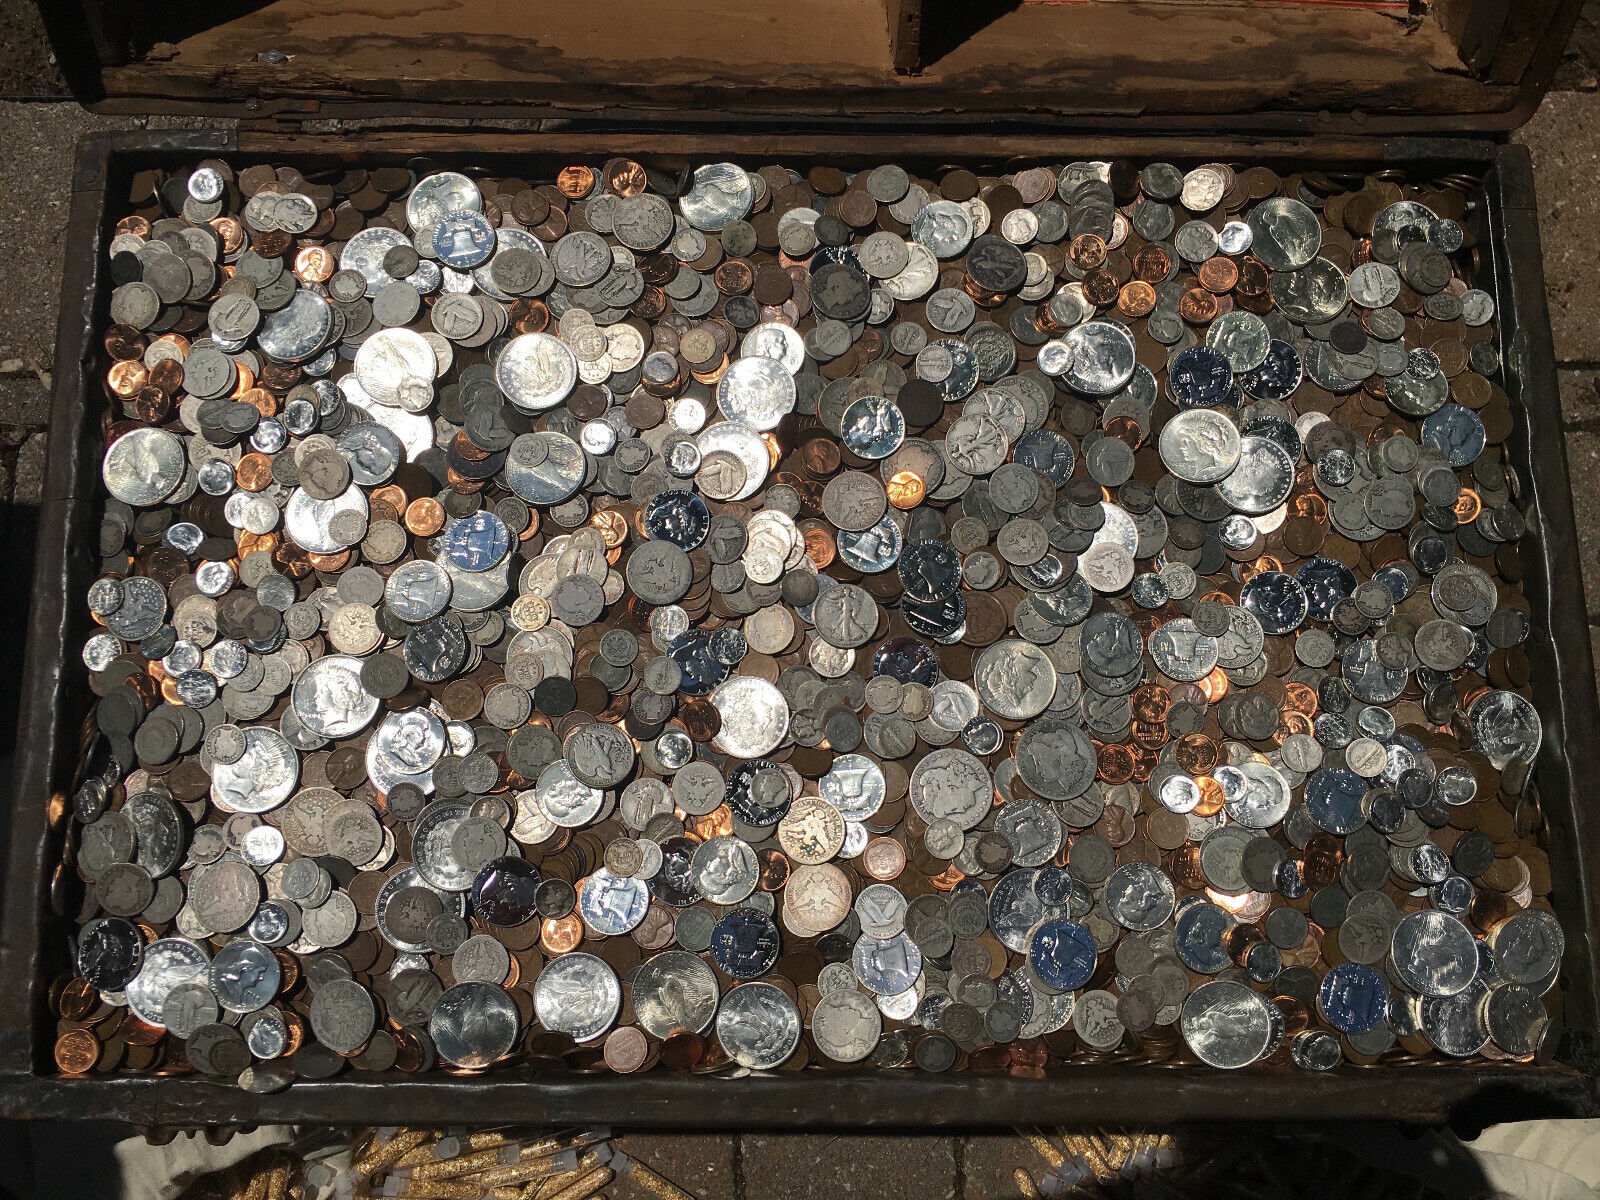 OLD US MIXED COIN LOT SILVER GOLD BULLION ESTATE SALE COLLECTION LIQUIDATION PDS